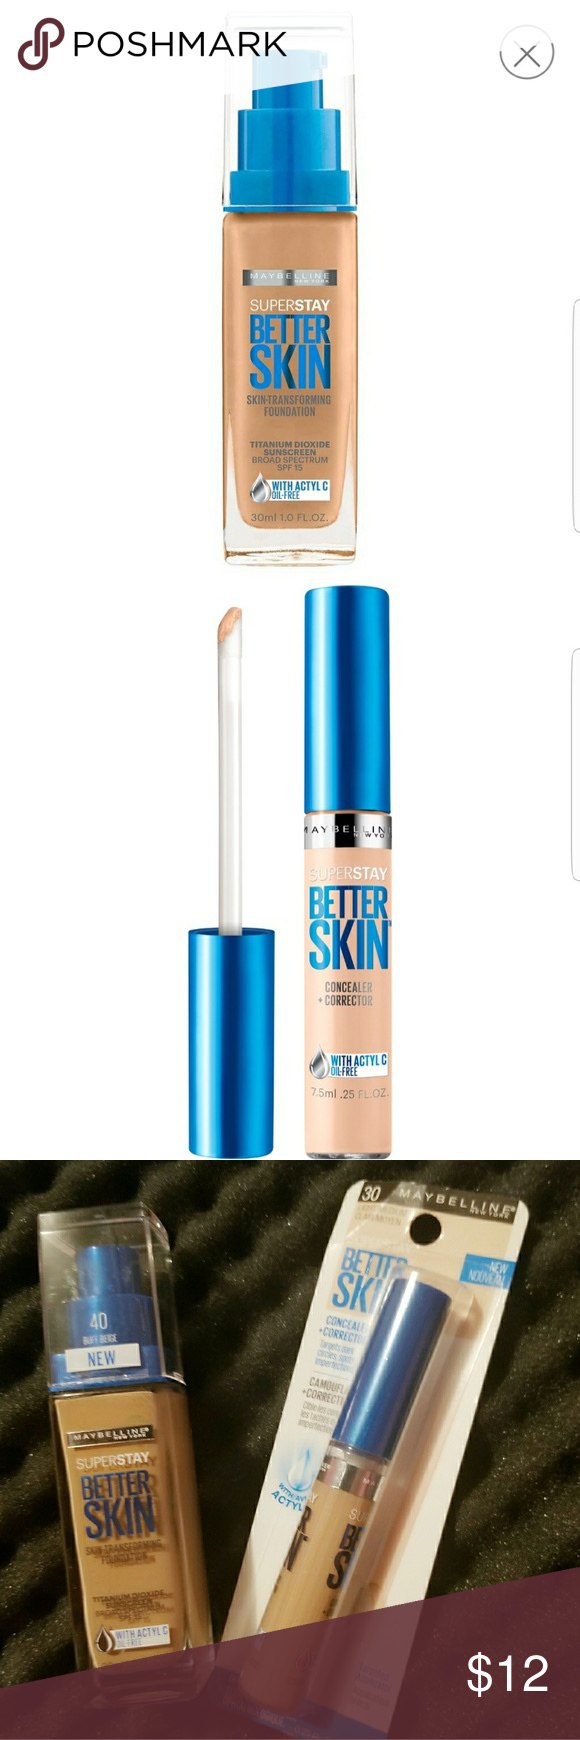 MAYBELLINE NEW YORK FOUNDATION + CONCEALER/CORRECT